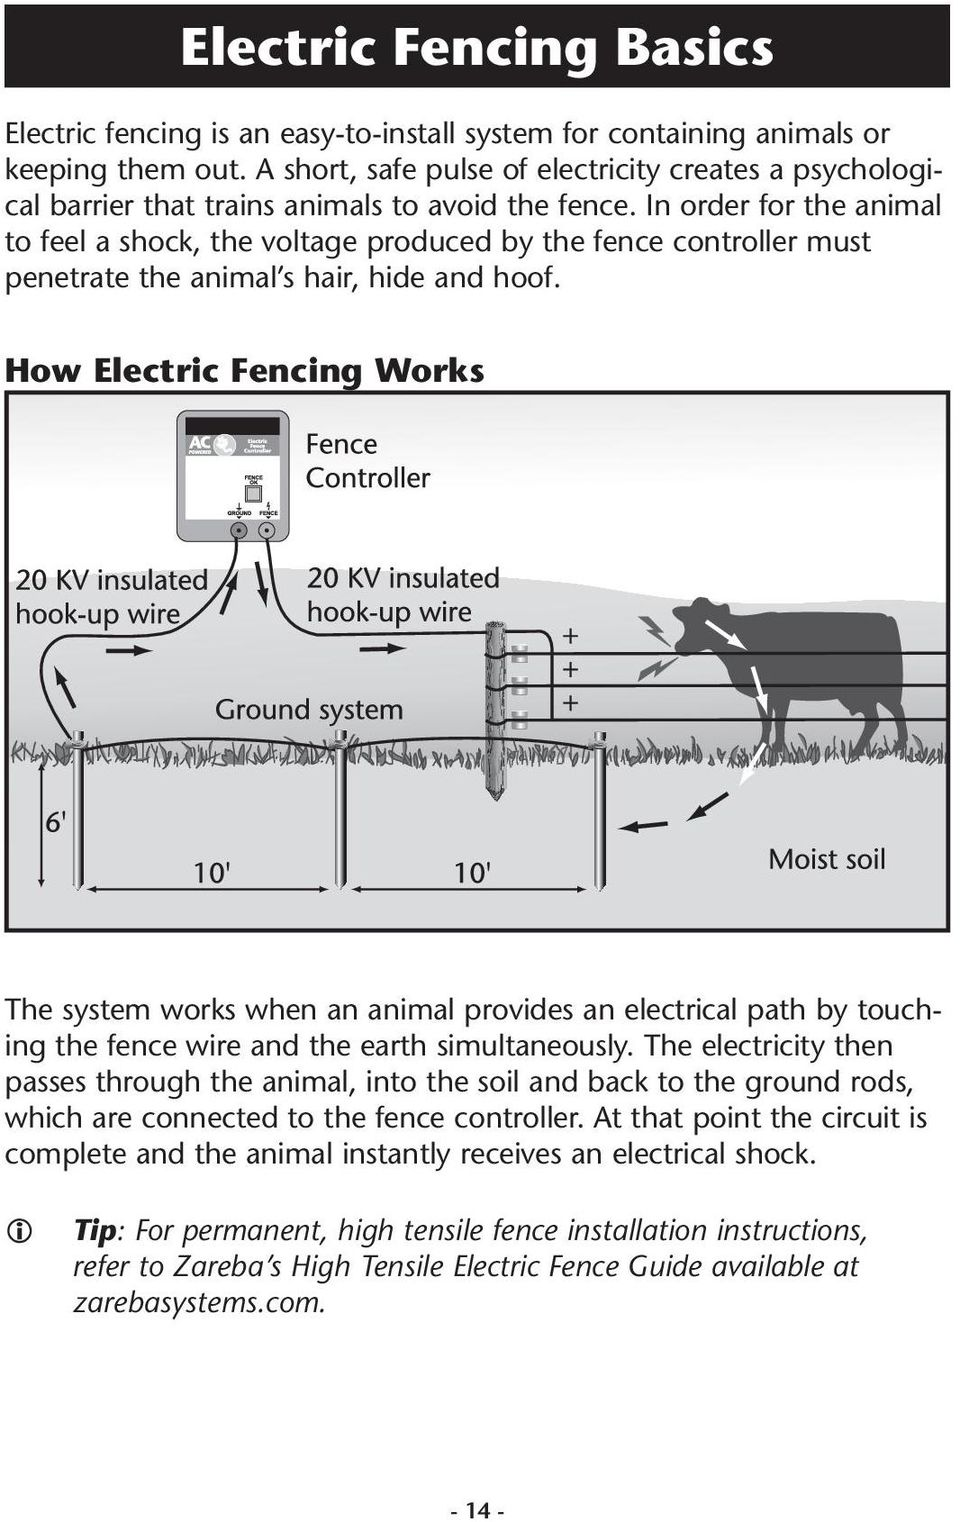 USER S MANUAL. For AC-Powered Fence Controllers. Part I: Fence ...